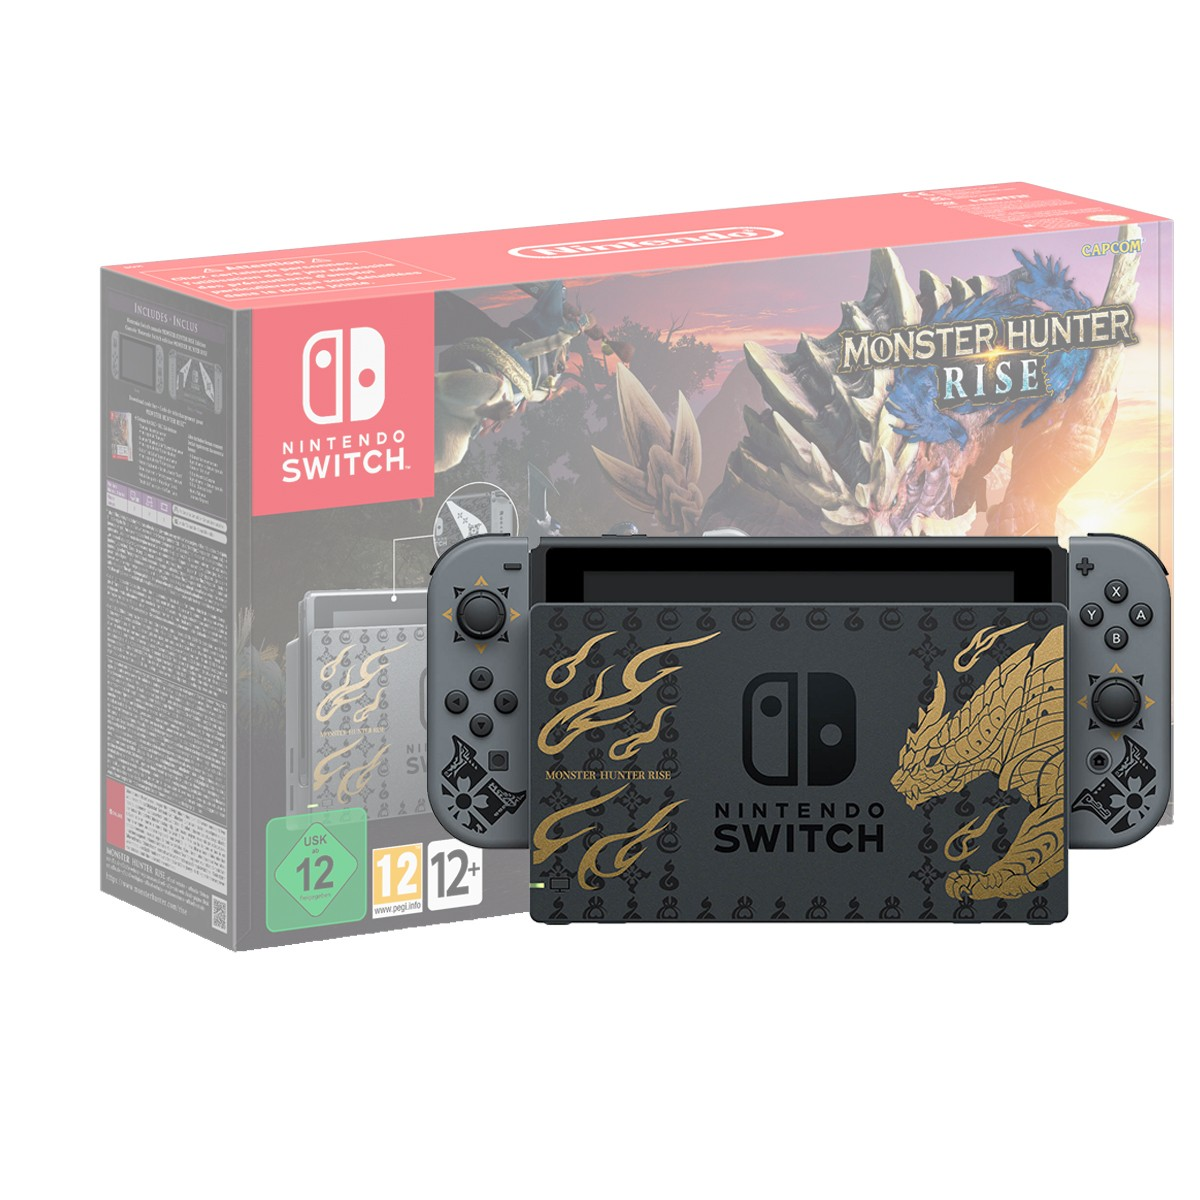 Nintendo Switch MONSTER HUNTER RISE Edition žaidimų konsolė v1.1(V2)